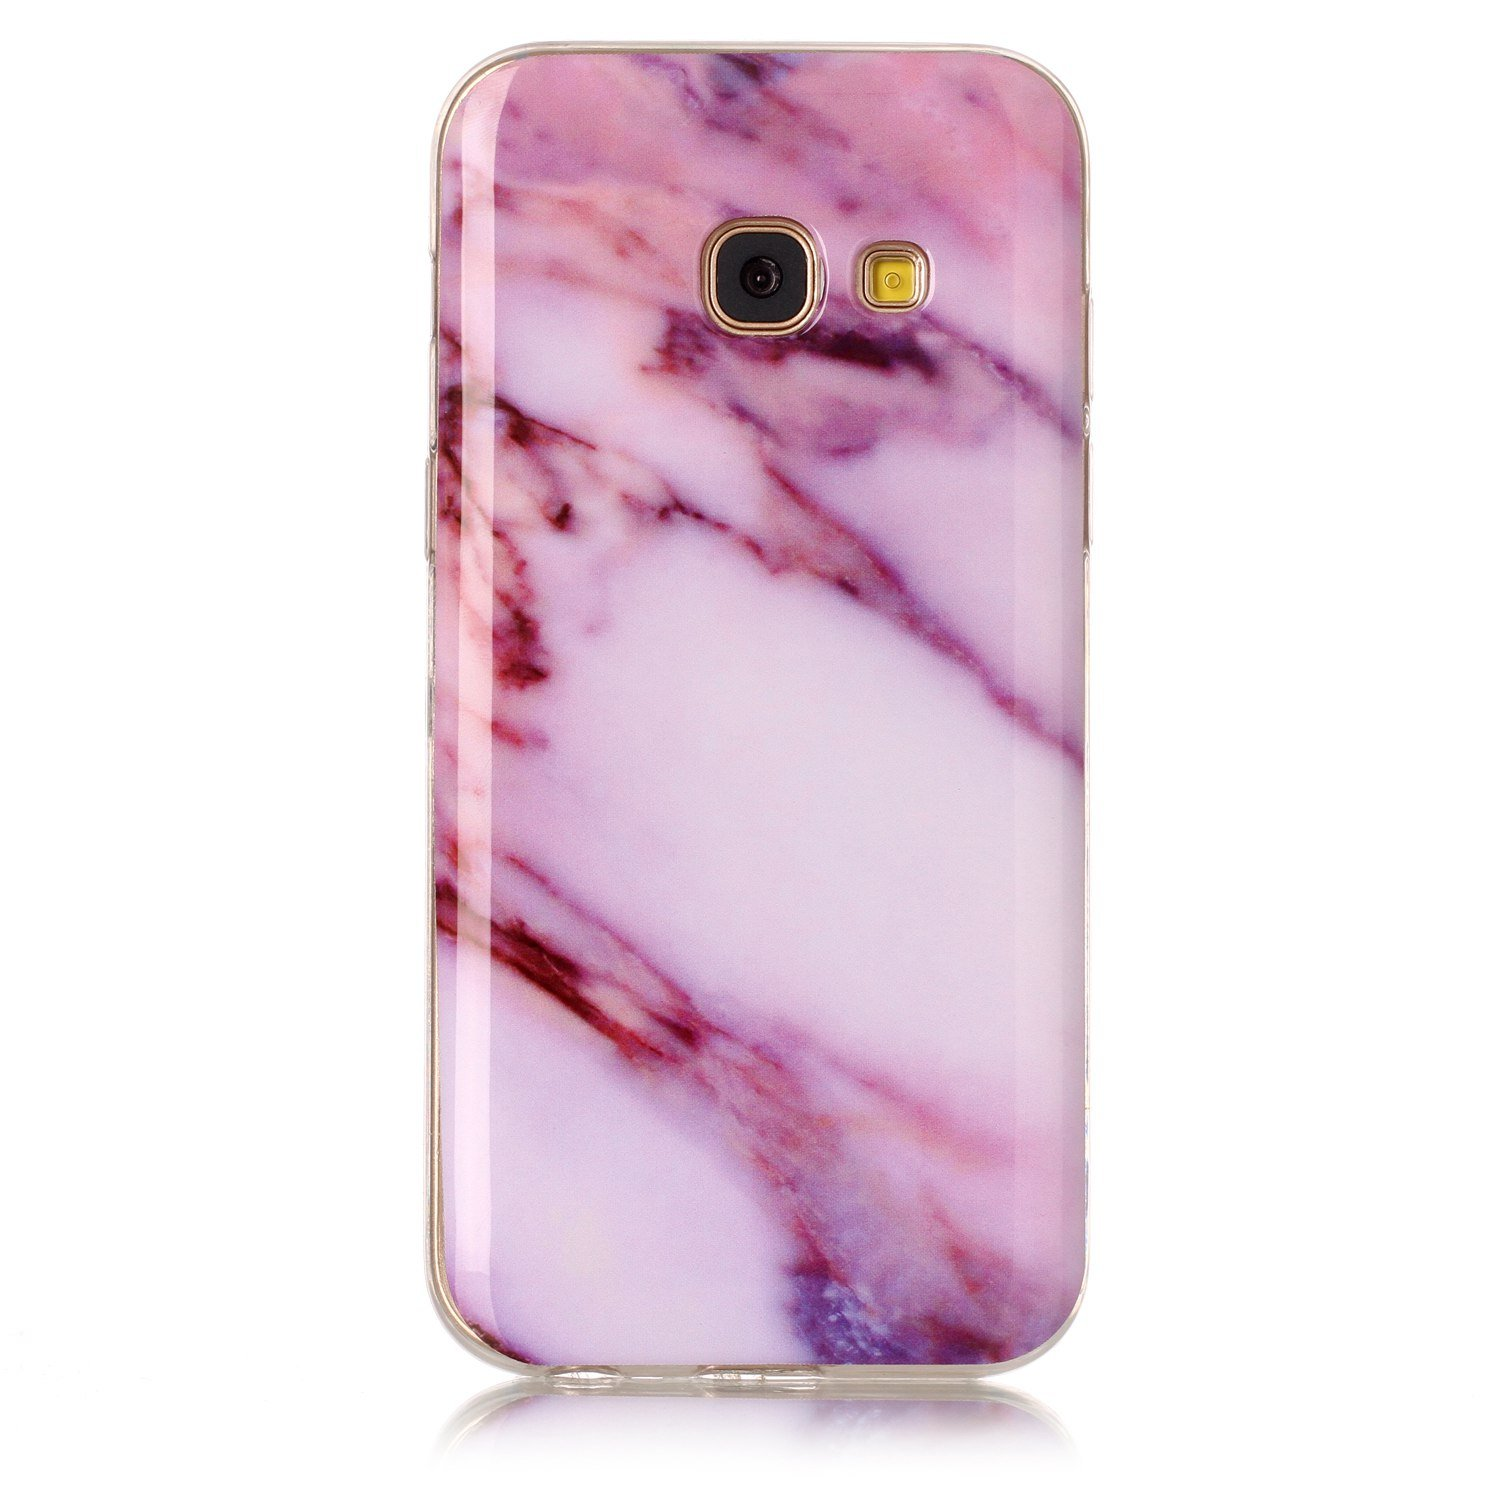 For Samsung Galaxy A5 2017 A520 Marble Case Blue and Gray,OYIME Unique Luxury Glitter Colorful Plating Pattern Skin Design Clear Silicone Rubber Slim Fit Ultra Thin Protective Back Cover Glossy Soft Gel TPU Shell Shockproof Drop Protection Protective Trans